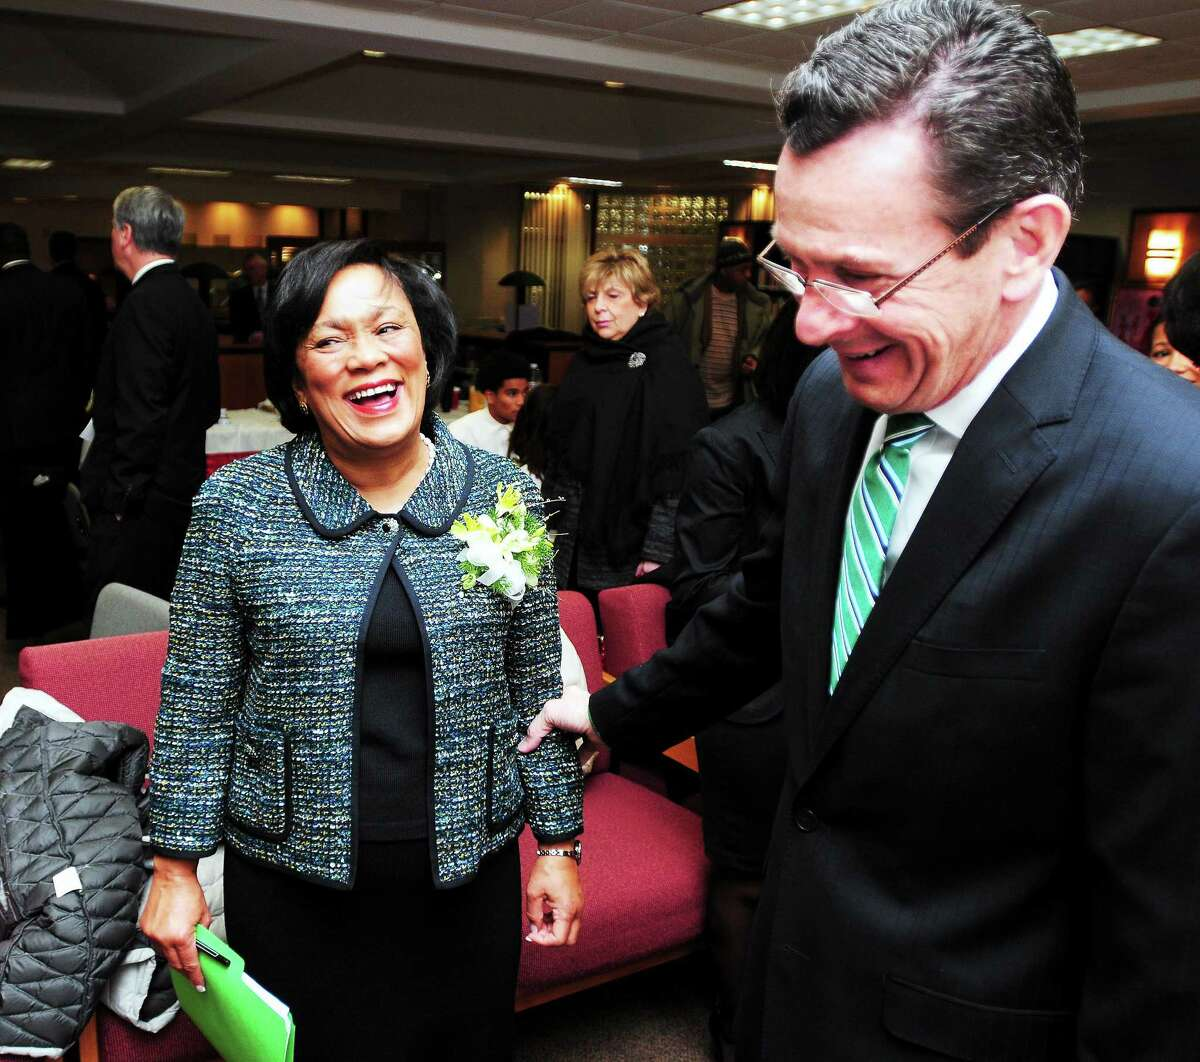 New Haven Mayor Toni N. Harp, left, is greeted by Gov. Dannel P. Malloy before inauguration ceremonies at Hill Regional Career High School in New Haven Wednesday.